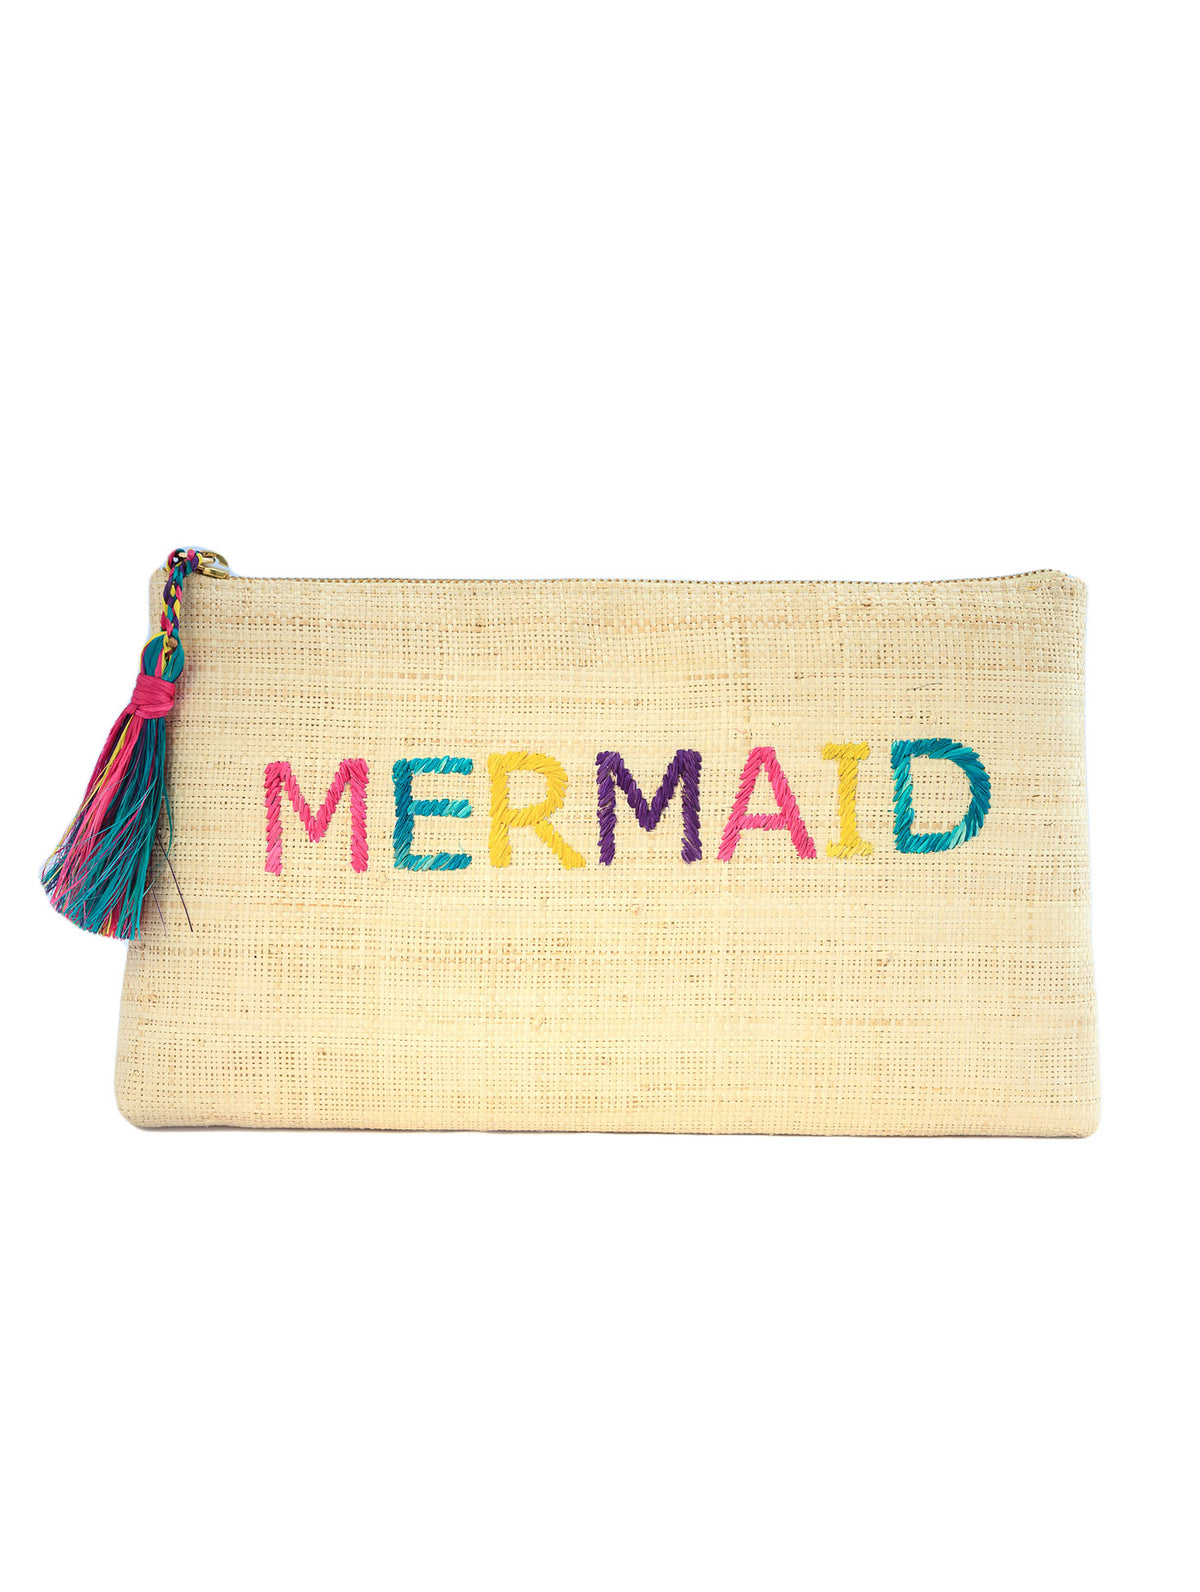 Kayu Mermaid Yellow Woven Clutch